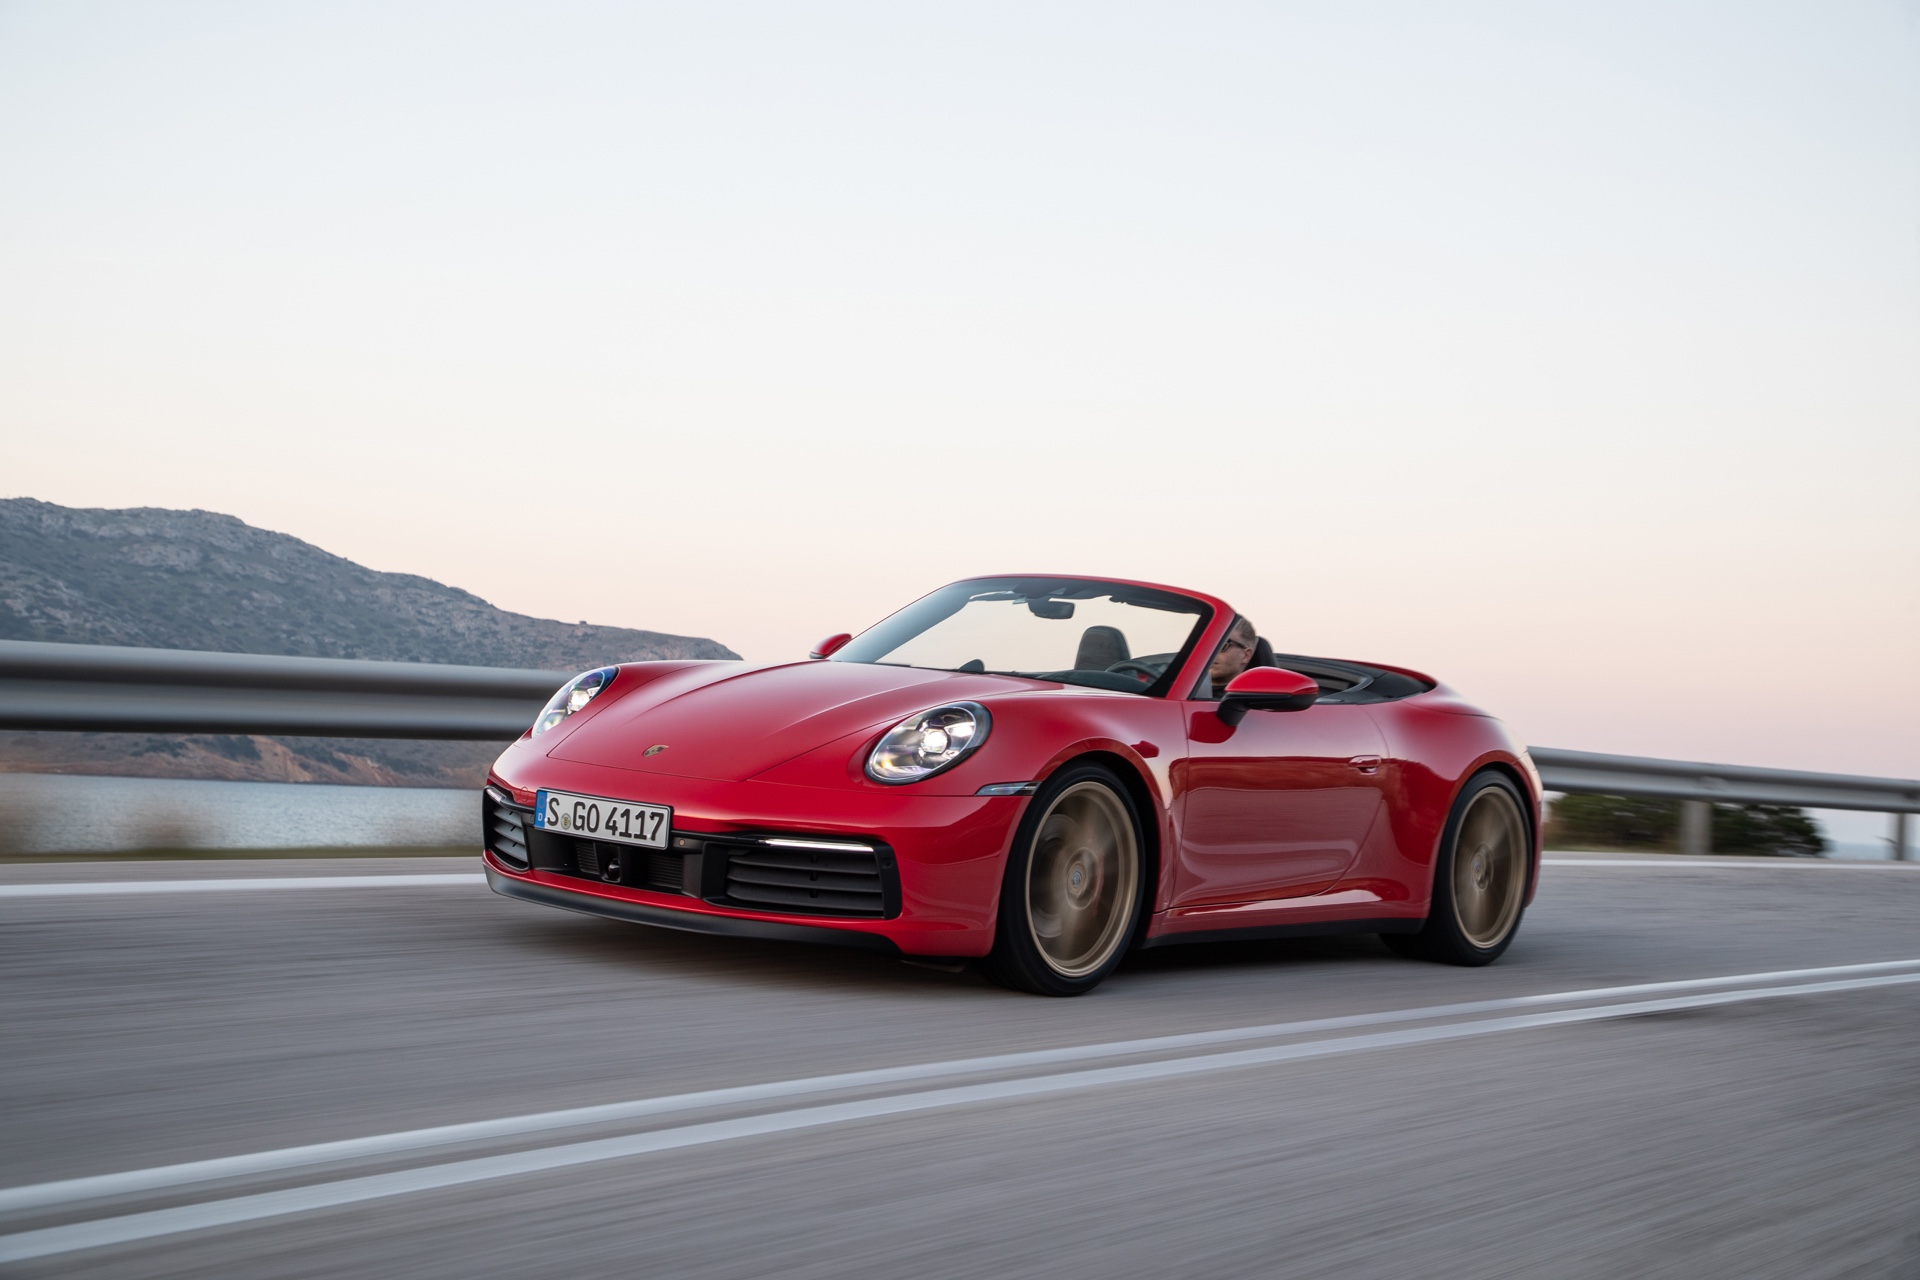 2019 Porsche 992 911 Carrera Cabriolet Review